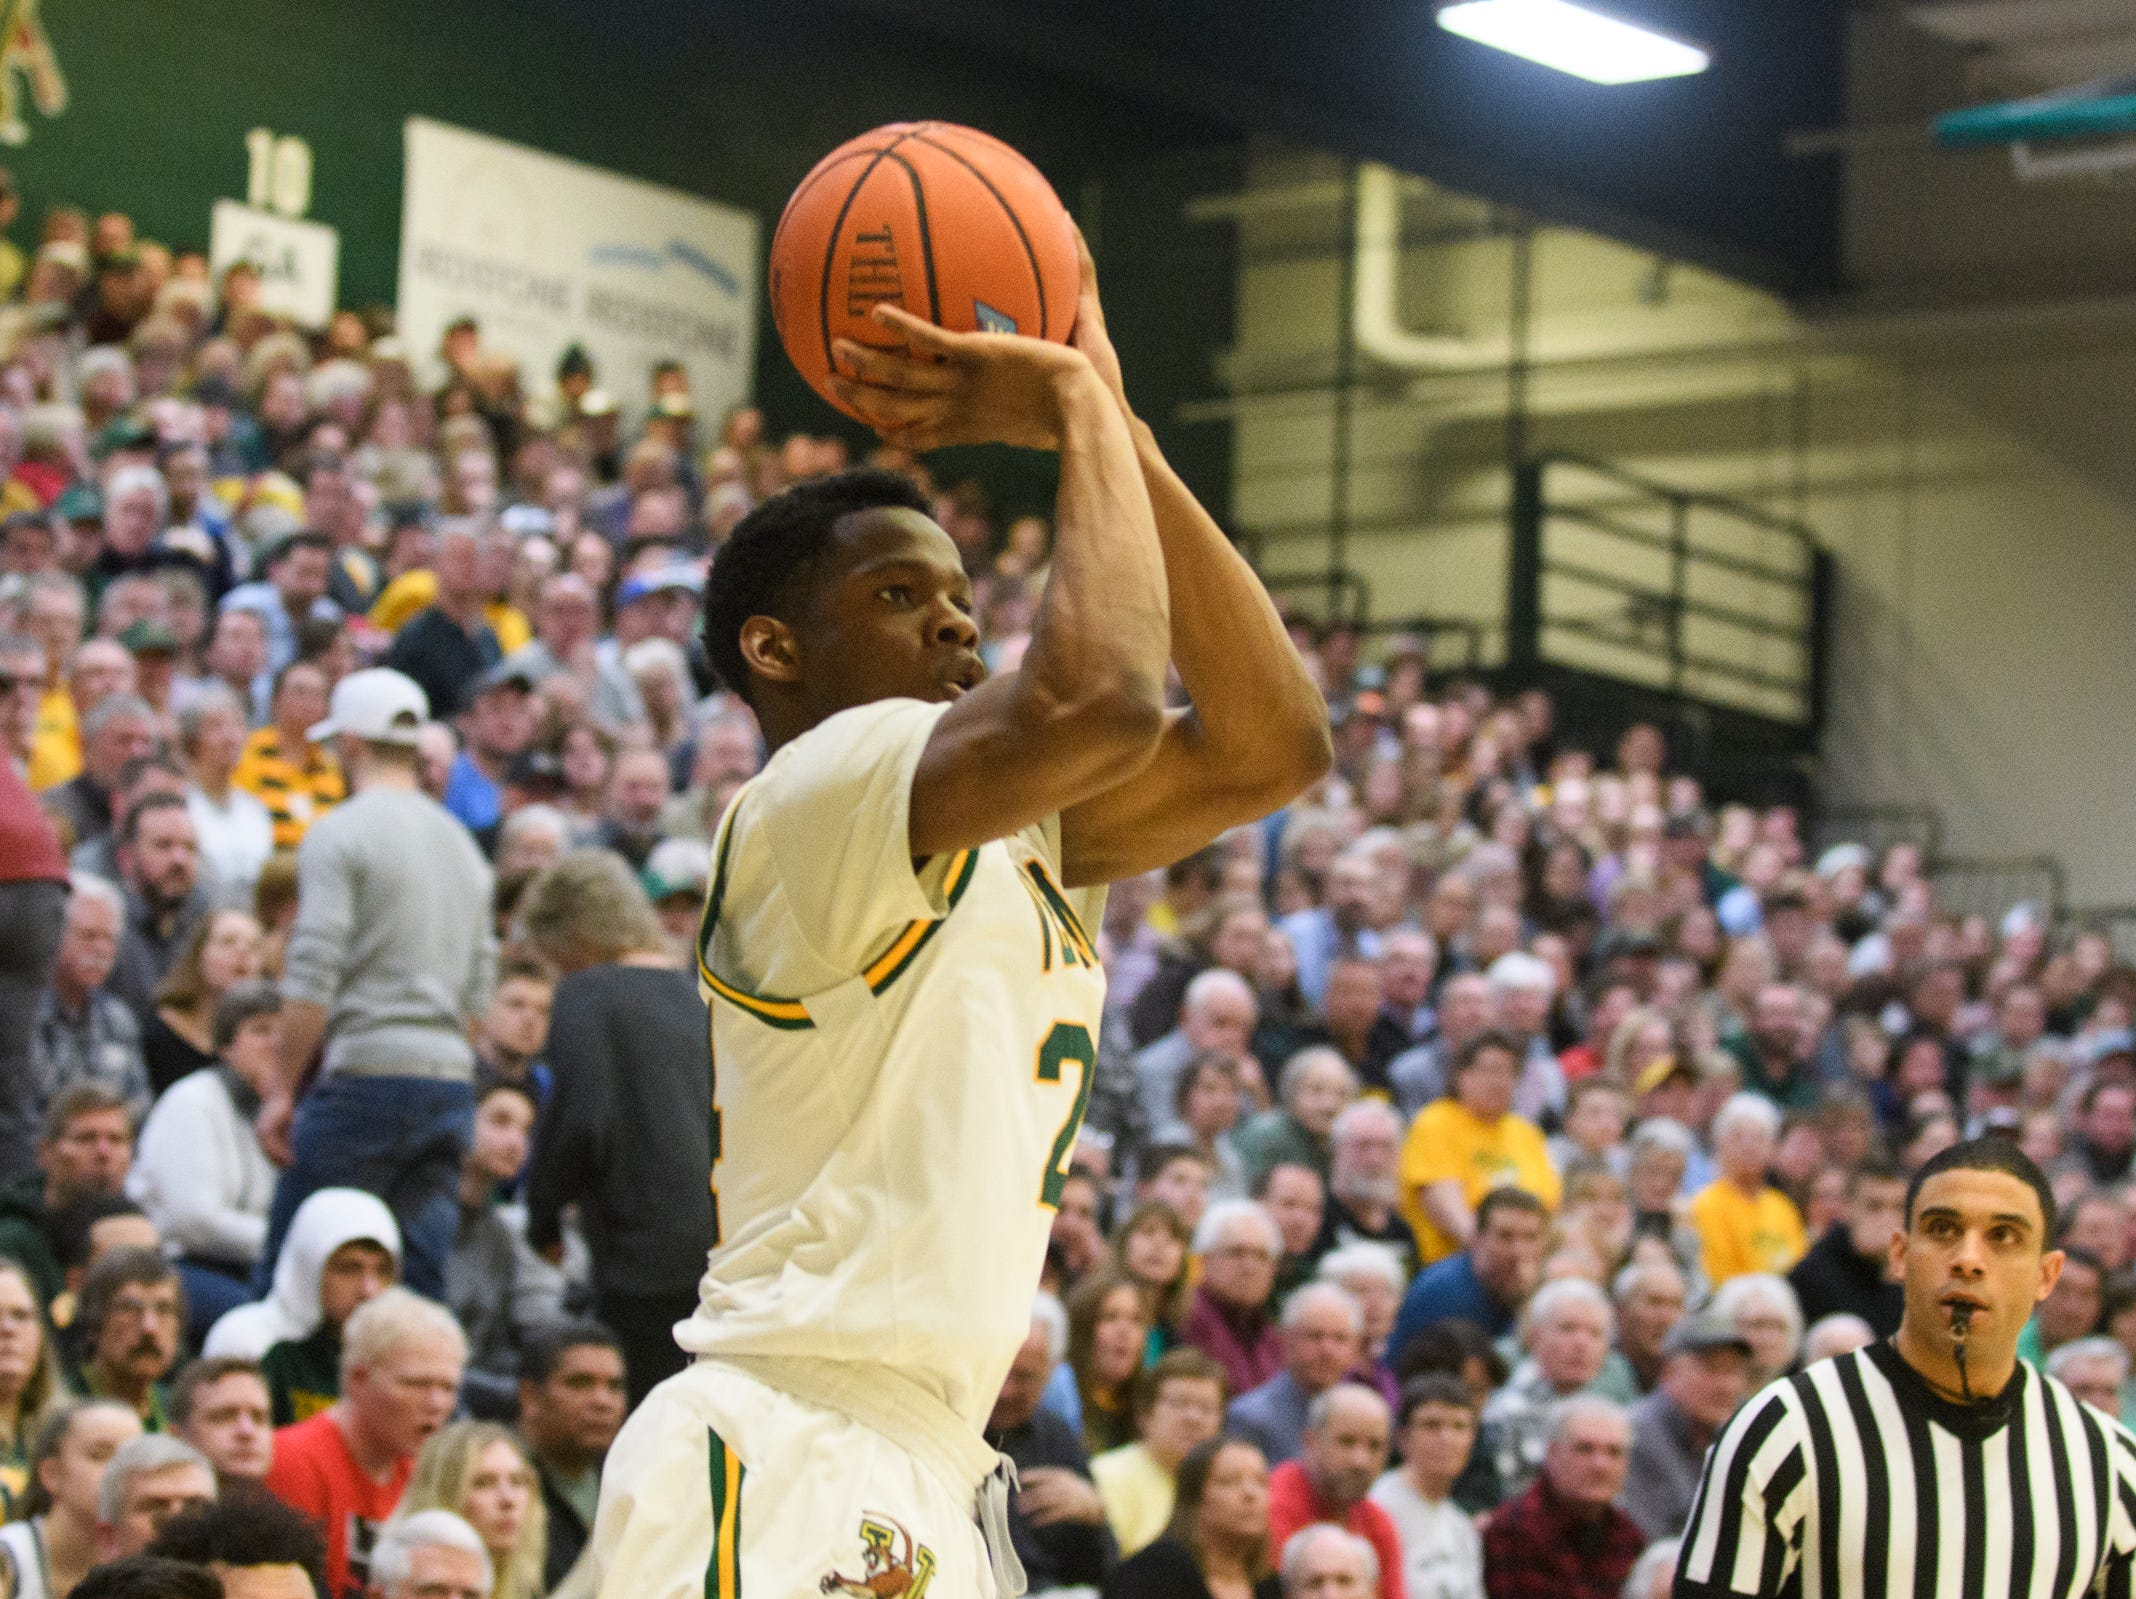 Vermont guard Ben Shungu (24) shoots the ball during the men's basketball game between the Stony Brook Seawolves and the Vermont Catamounts at Patrick Gym on Saturday night March 2, 2019 in Burlington, Vermont.